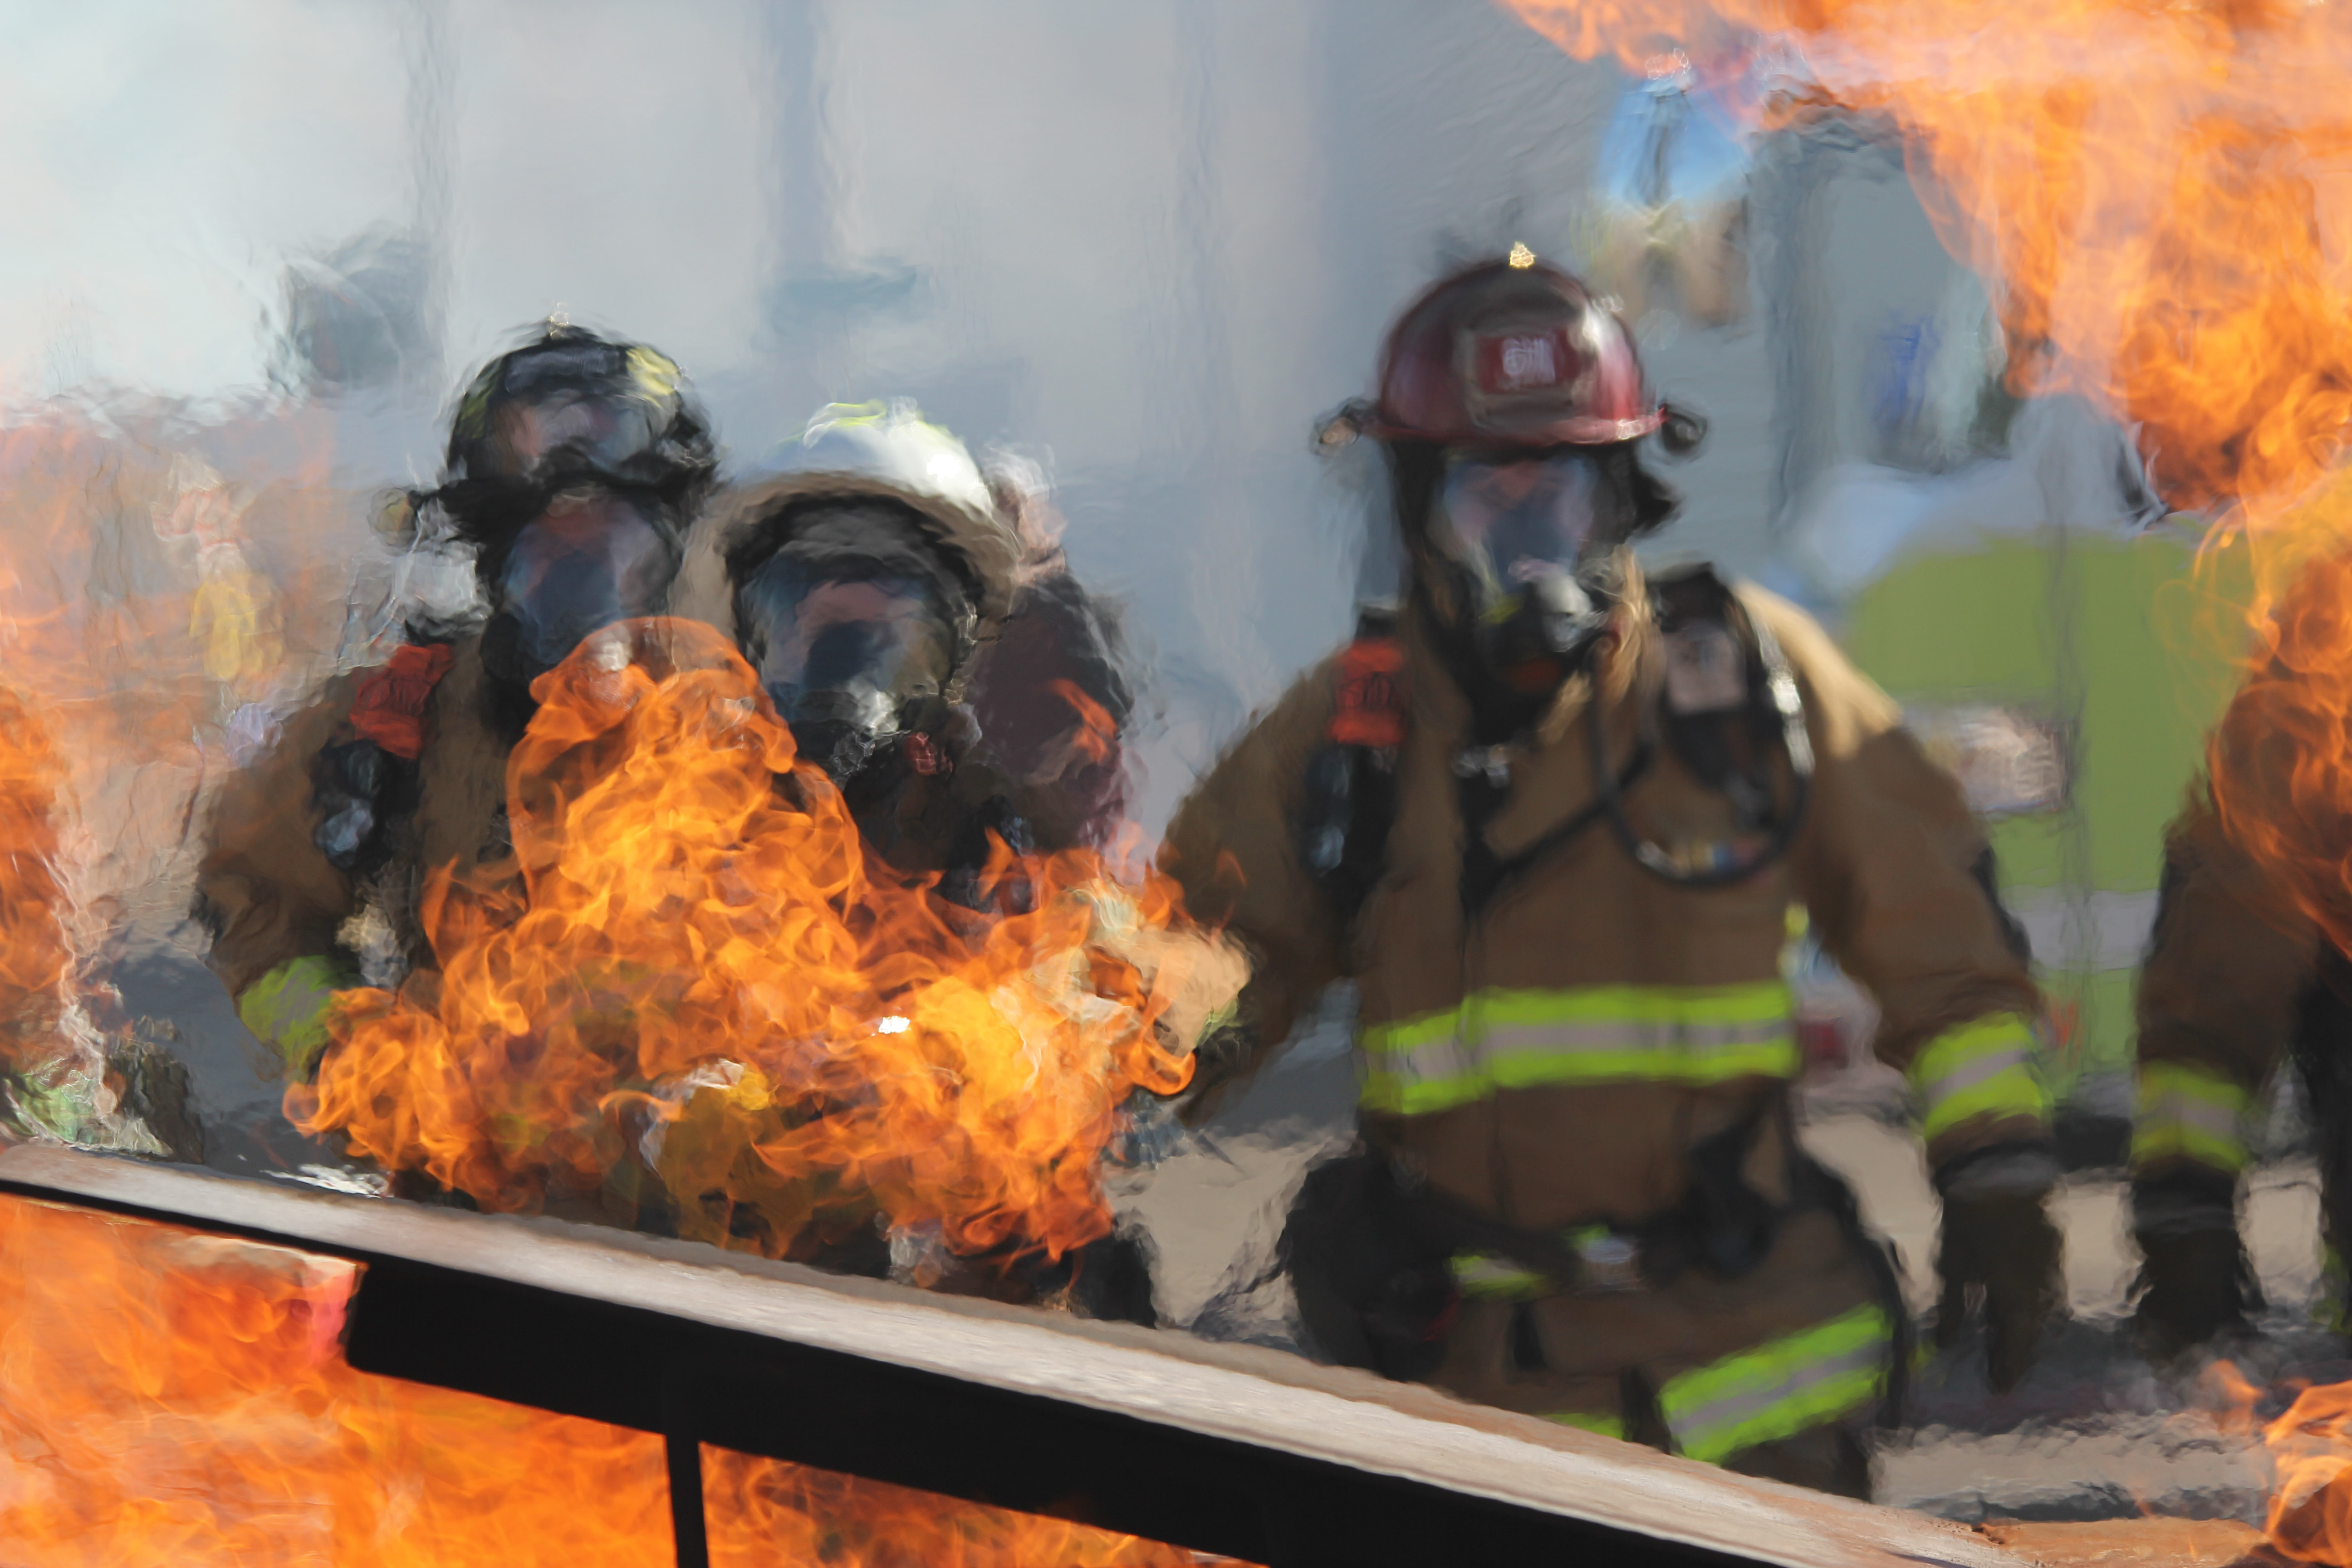 Why You Need to Do Fire Risk Assessments